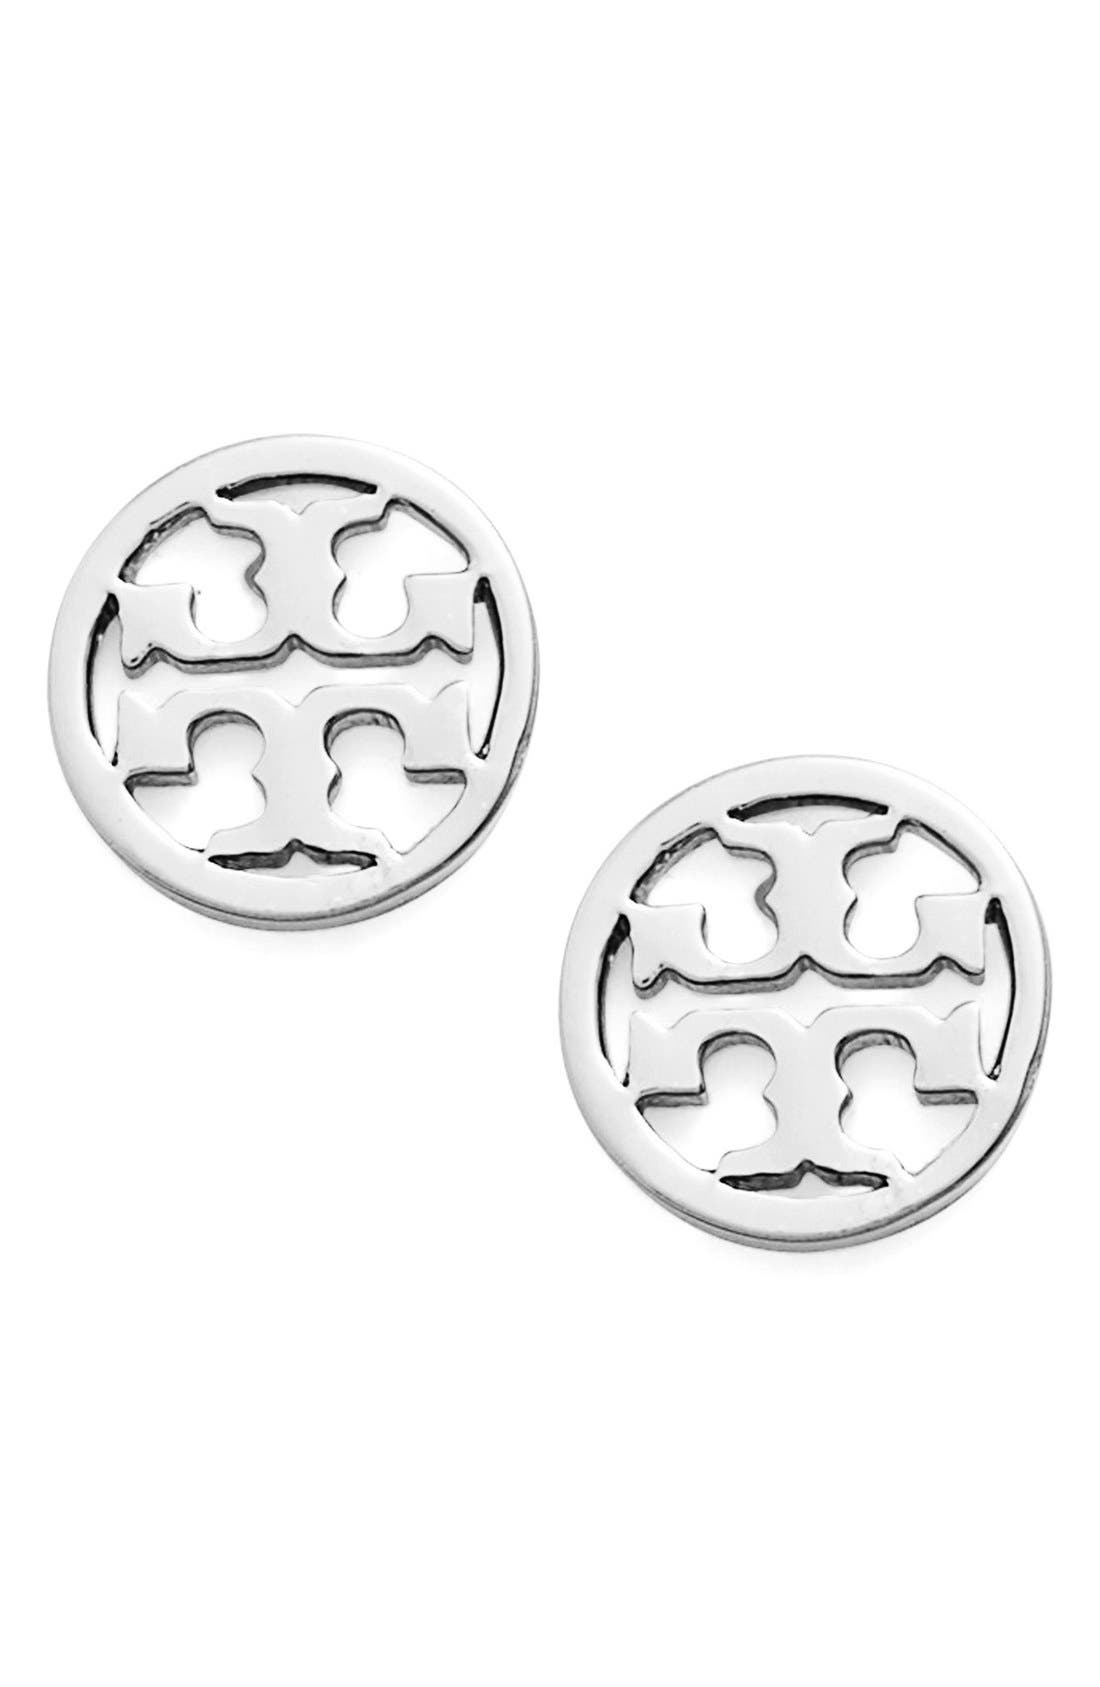 Main Image - Tory Burch Circle Logo Stud Earrings